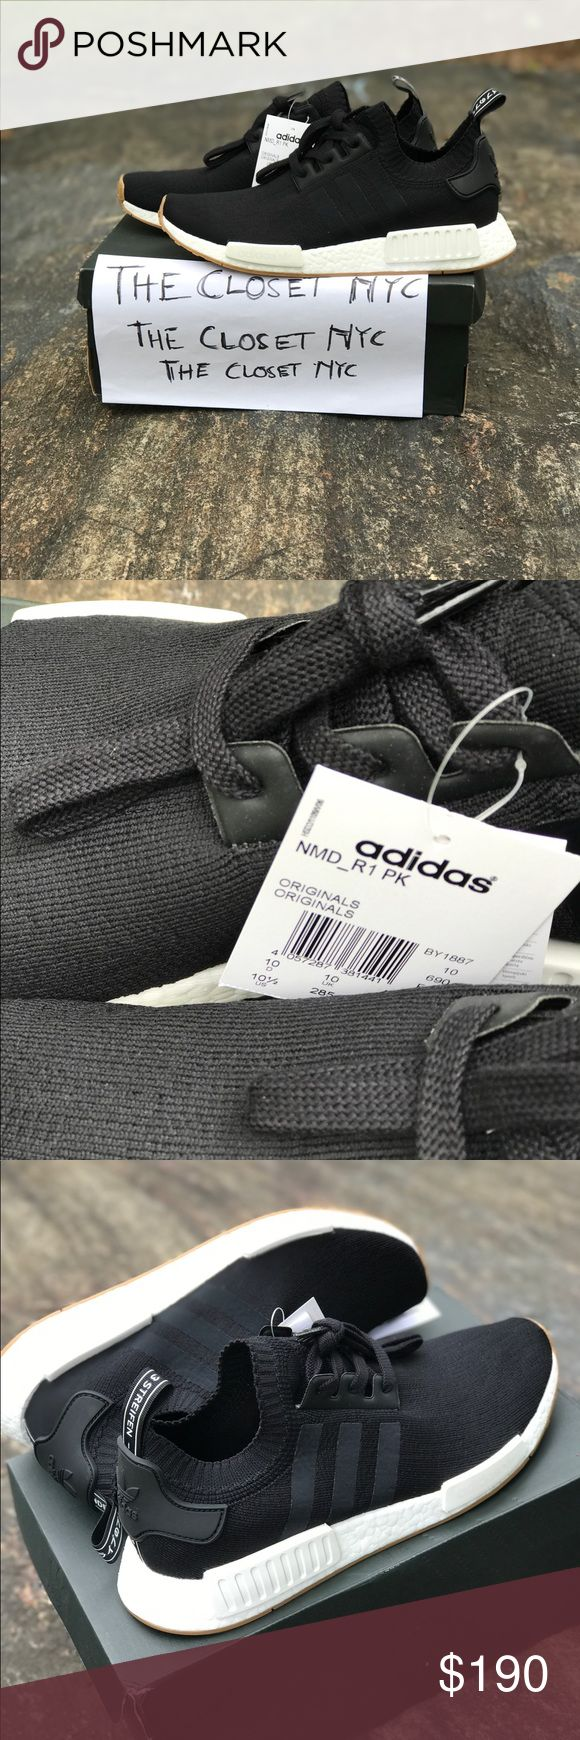 Adidas Nmd R1 Pk Gum Pack Black Legit NMD R1 Pk Gum Pack Black.                                                  STYLE CODE : BY1887.                                                                            New with box and u can ask for anything to make you know u buying the right thing. receipts, more pictures etc. Heads up i took all the photos myself. Item would be shipped double box Adidas Shoes Sneakers